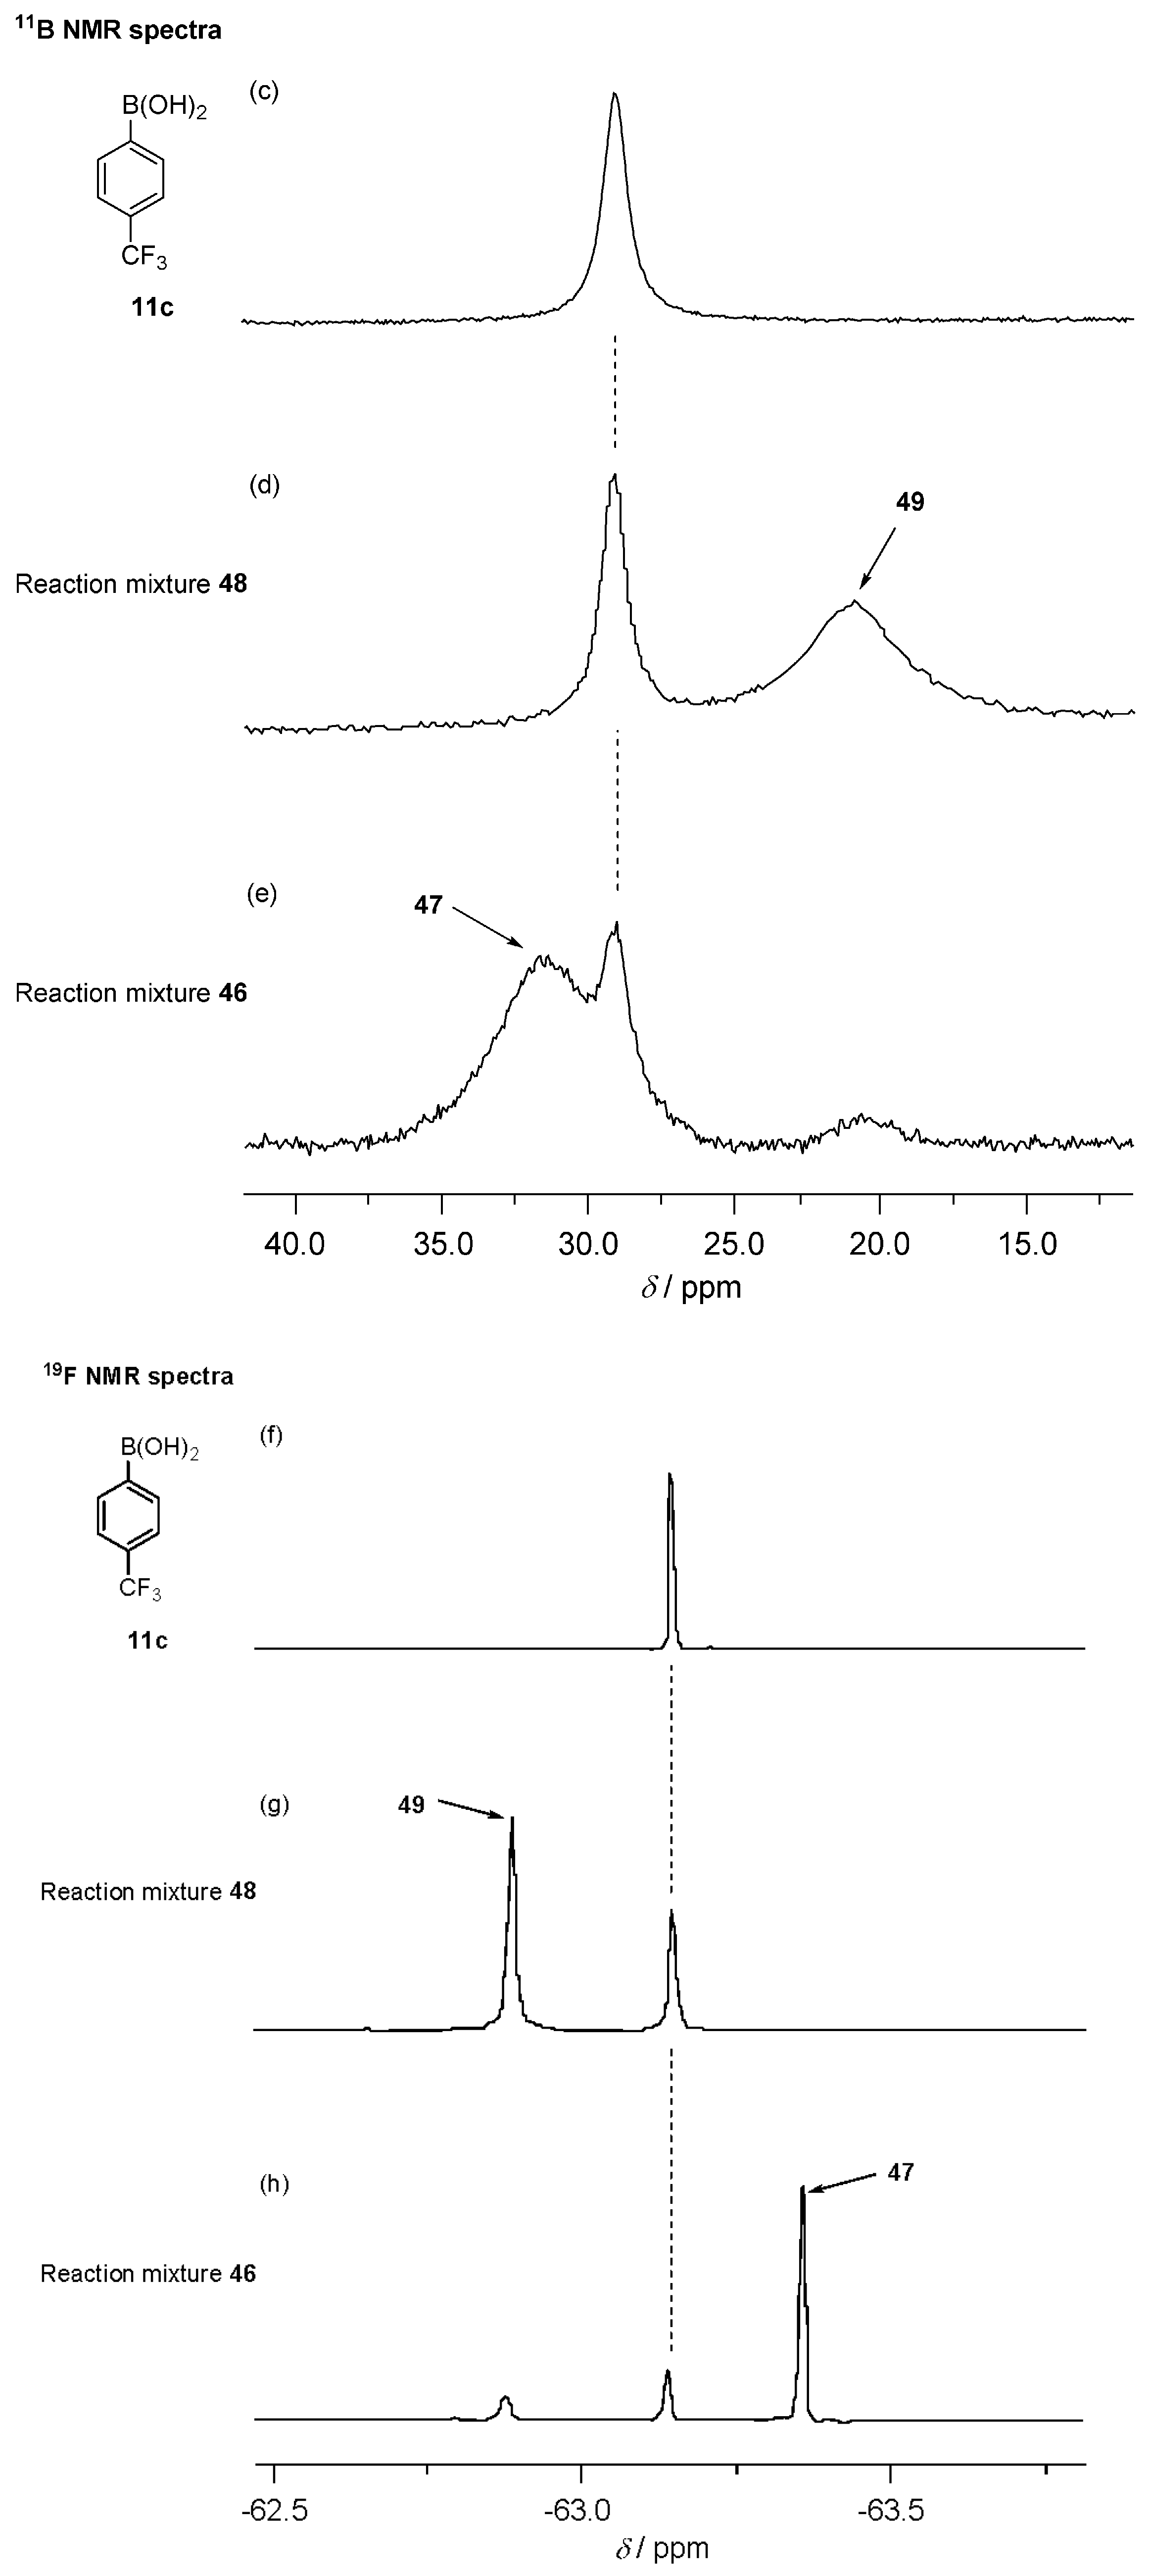 synthesis of levulinate ester in solvent free system The synthesis of methyl butyrate and octyl acetate through immobilized rhizopus oryzae nrrl 3562 lipase mediated transesterification was studied under solvent-free conditions the effect of different transesterification variables, namely, molarity of alcohol, reaction time, temperature, agitation, addition of water, and enzyme amount on molar conversion (&#x25) was investigated.